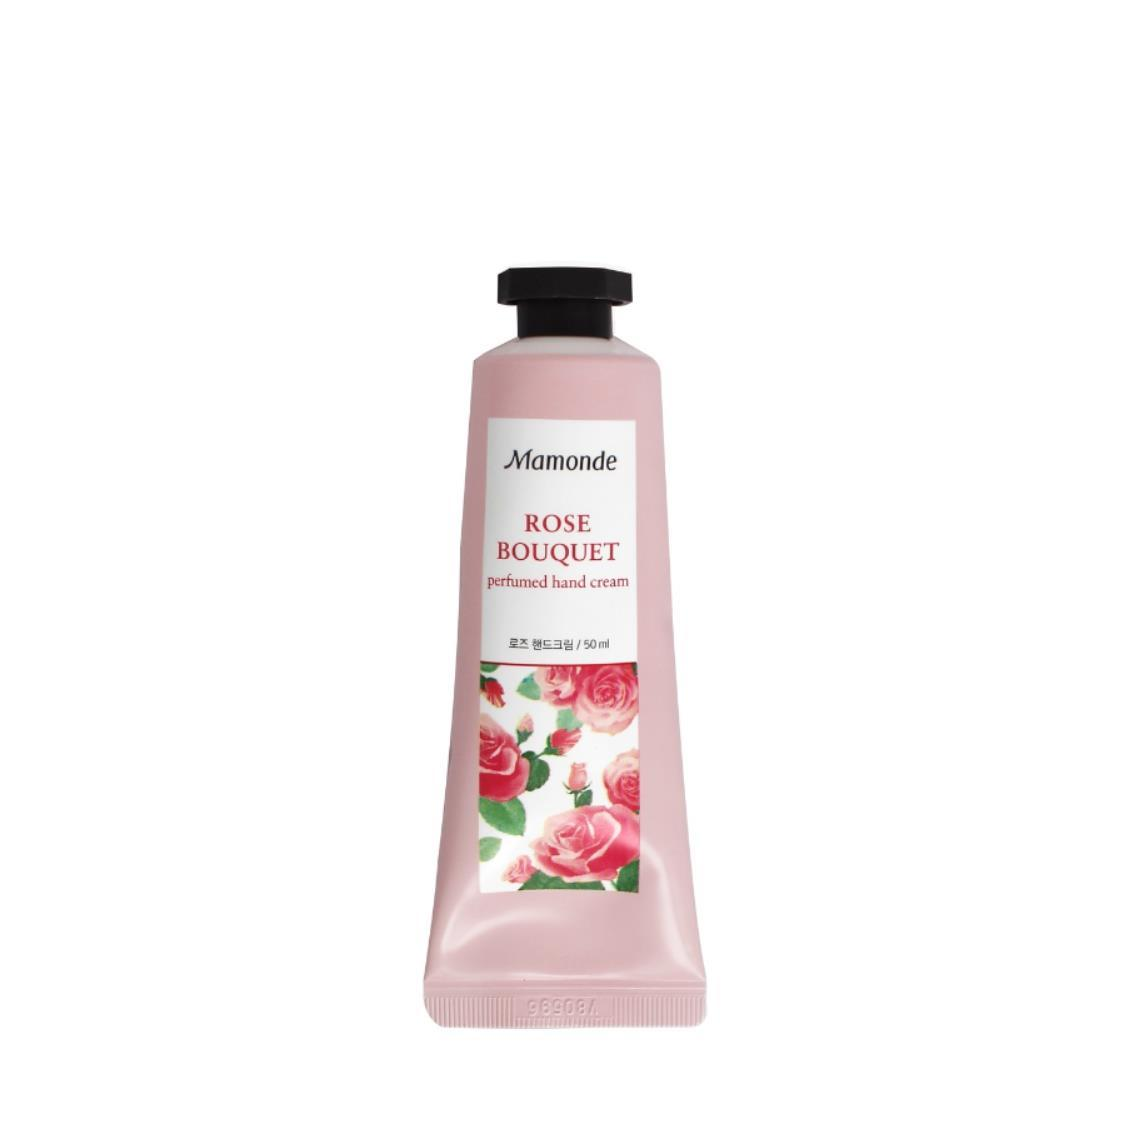 Rose Bouquet Hand Cream 50ml